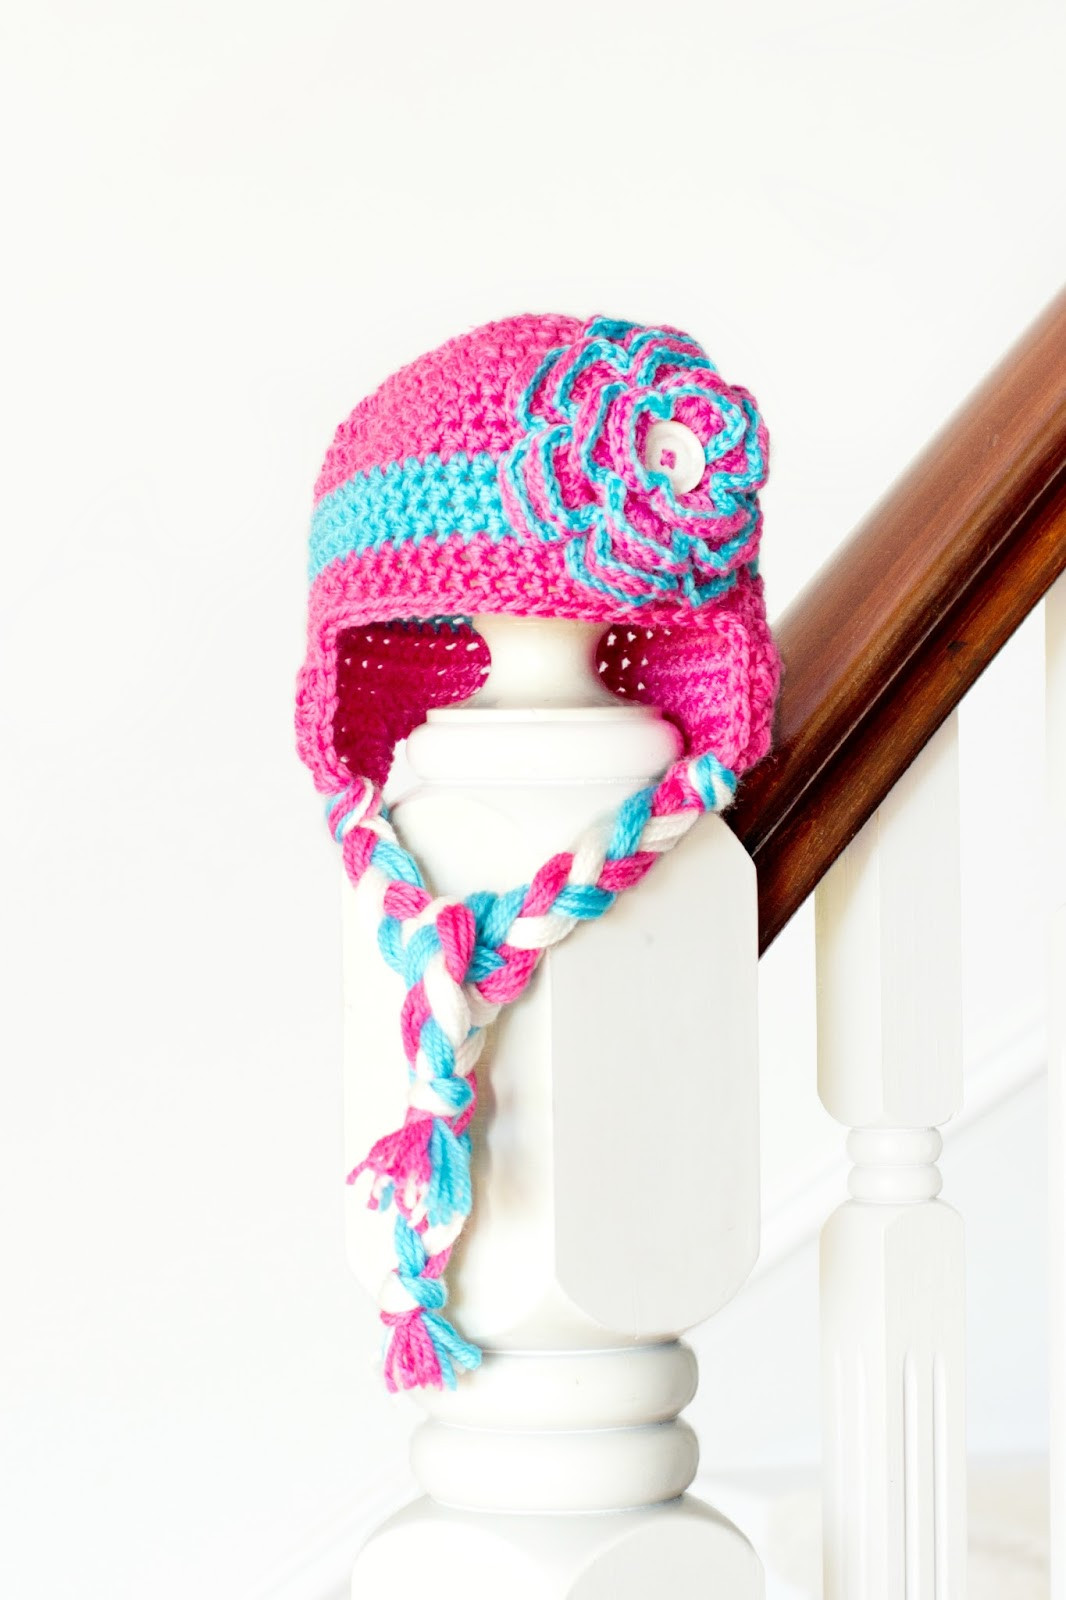 Awesome 41 Adorable Crochet Baby Hats & Patterns to Make Crochet Flower for Baby Hat Of Beautiful 42 Ideas Crochet Flower for Baby Hat